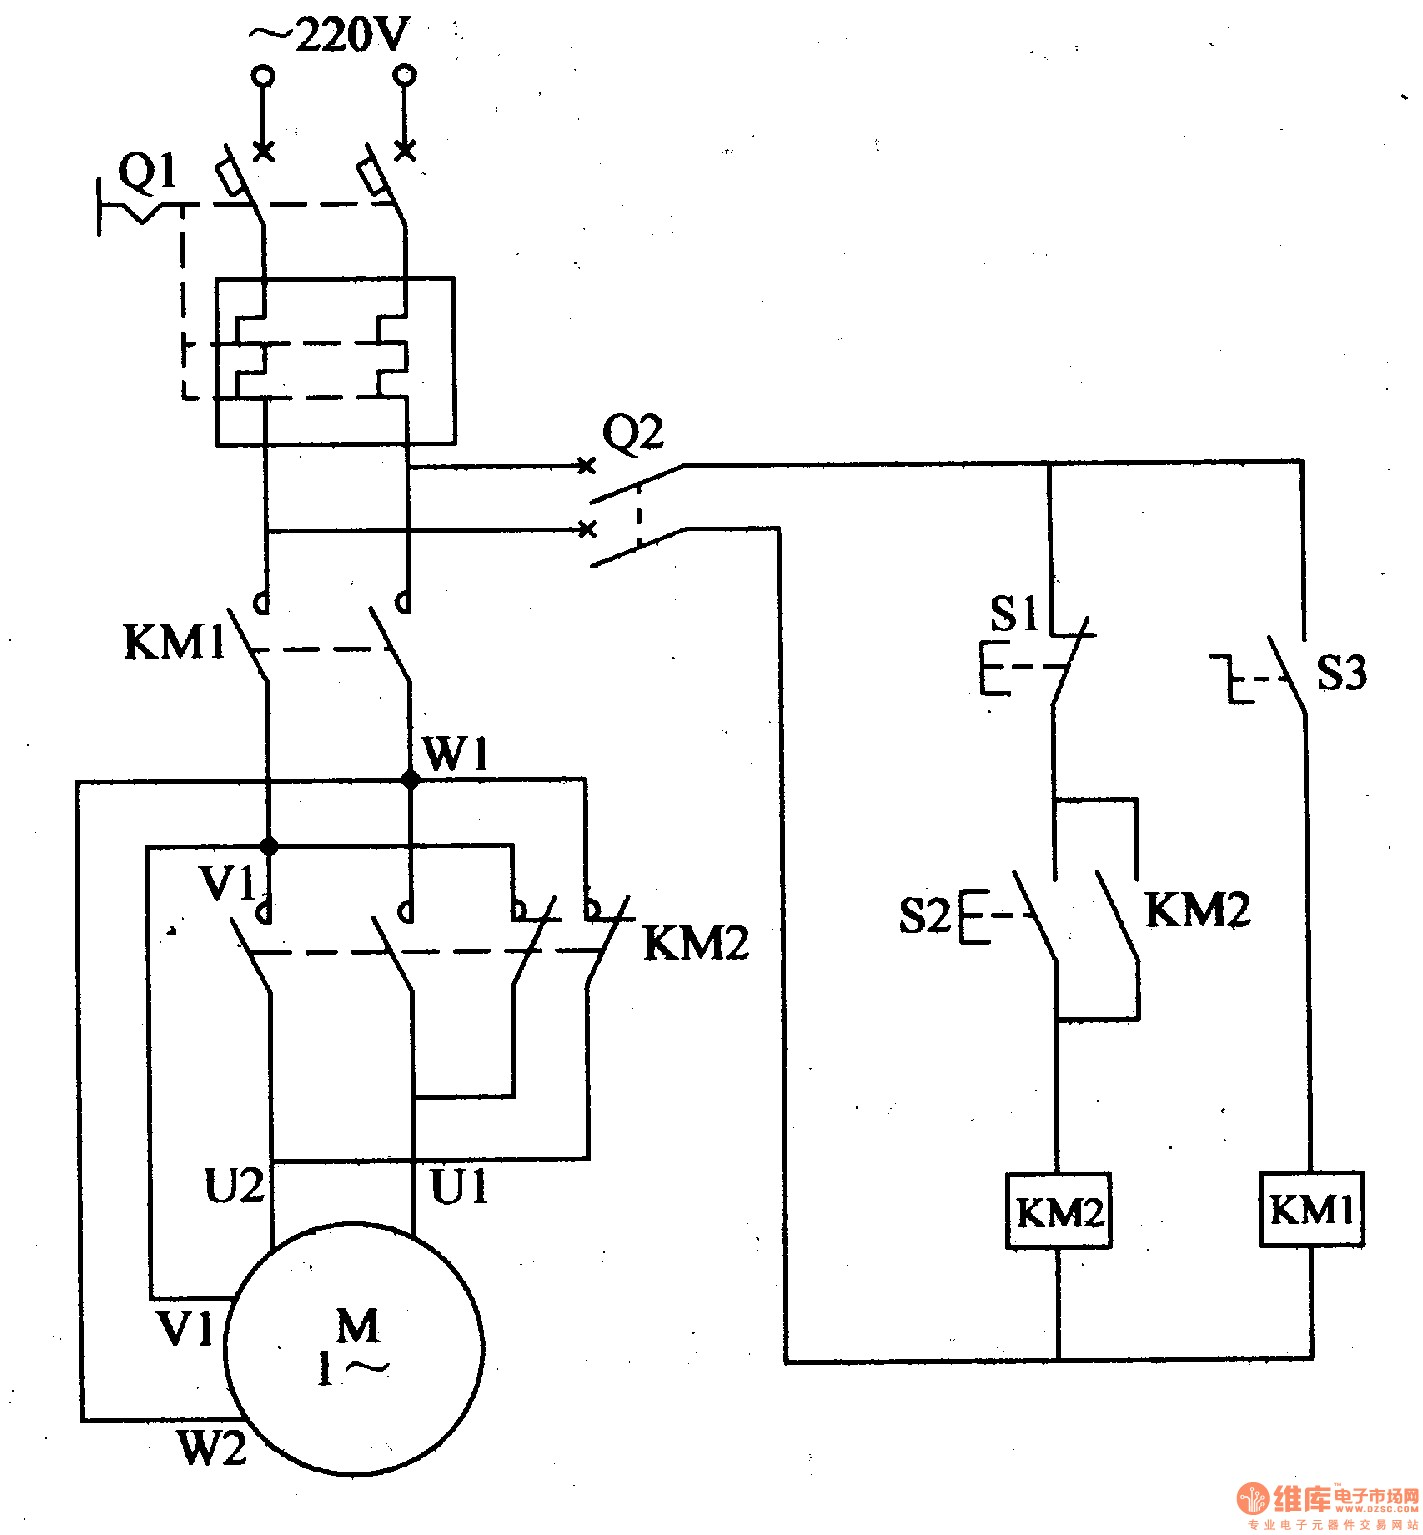 Cutler Hammer Motor Starter Wiring Diagram Wiring Diagram Single Phase Motor Reversing Switch Wiring Of Cutler Hammer Motor Starter Wiring Diagram